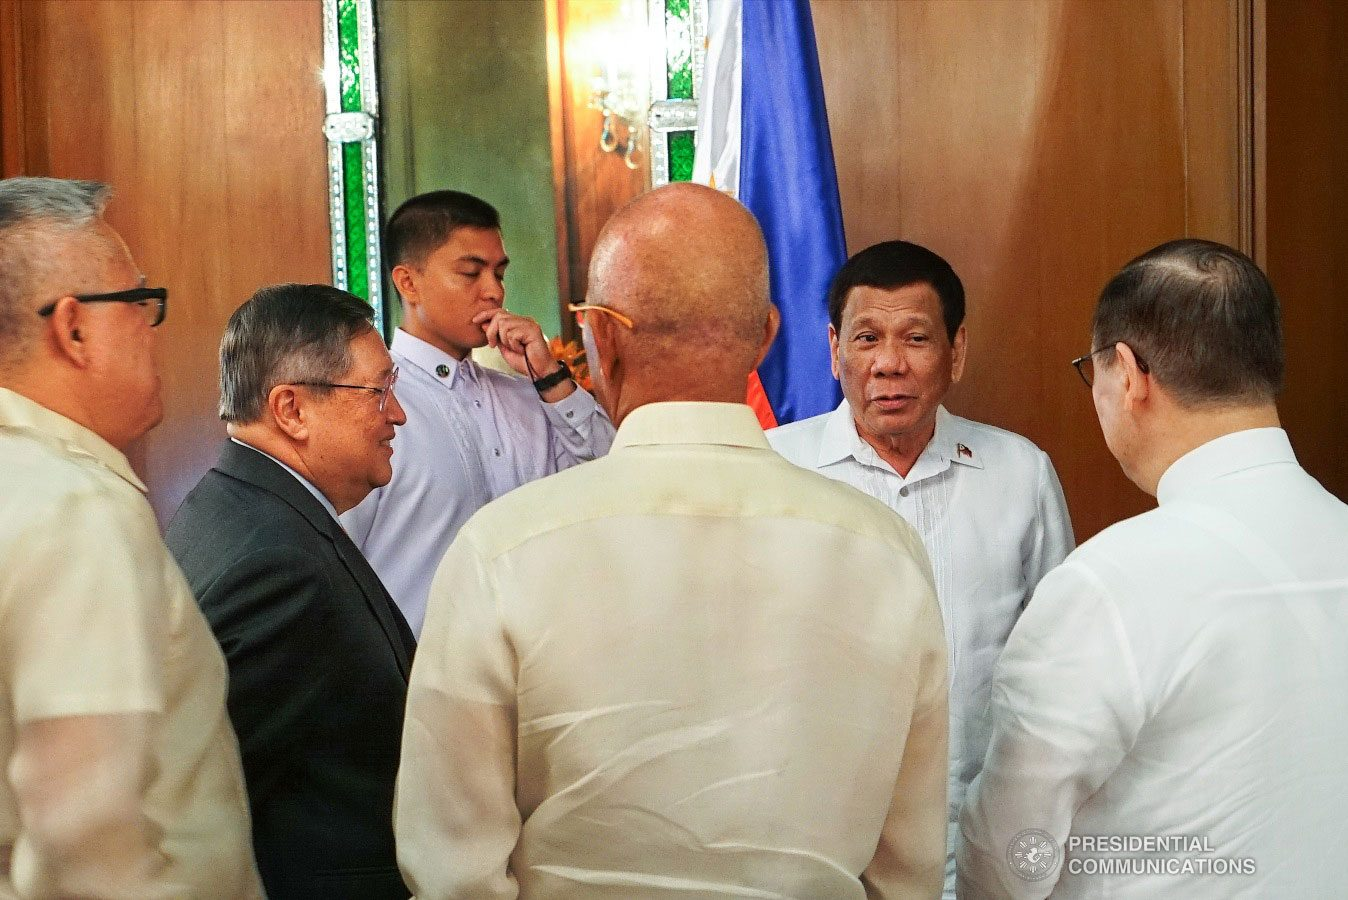 President Rodrigo Roa Duterte gets into a huddle with some members of his cabinet at the sidelines of the presentation of credentials of the Ambassadors-designate of The Czech Republic and The Commonwealth of Australia at the Malacañan Palace on January 15, 2019. RENE LUMAWAG/PRESIDENTIAL PHOTO